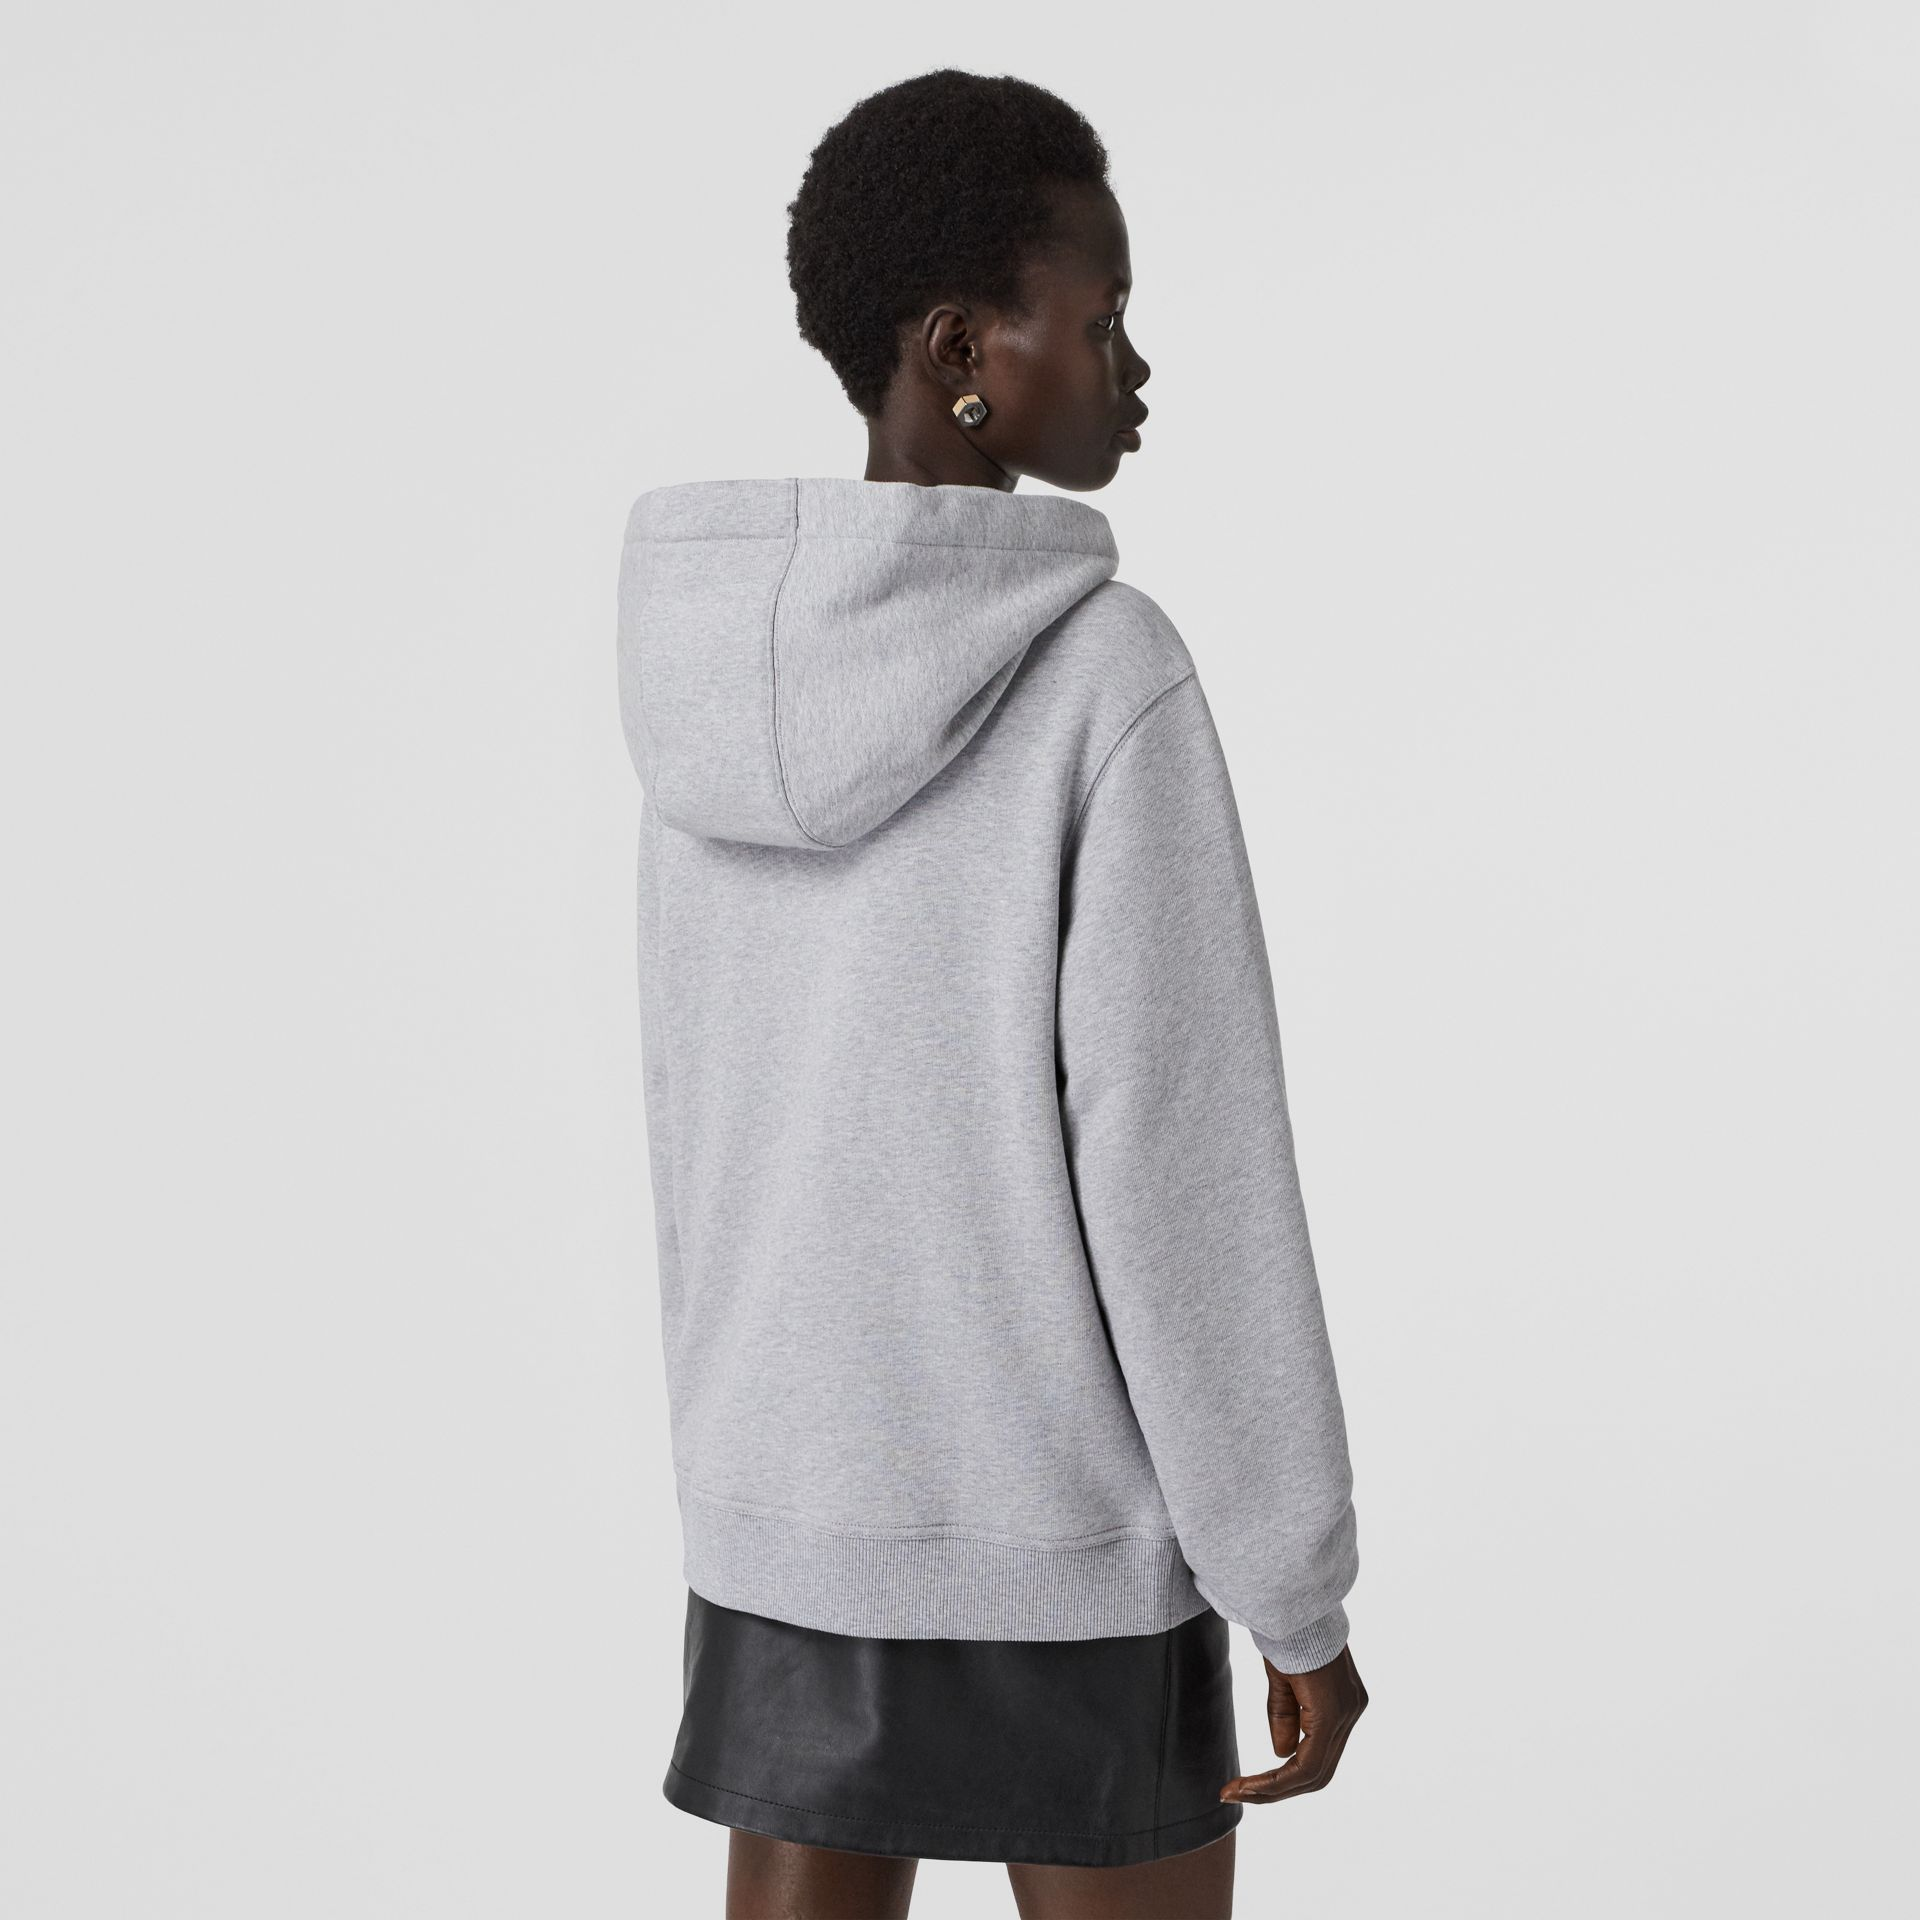 Monogram Motif Cotton Oversized Hooded Top in Pale Grey Melange - Women | Burberry - gallery image 2